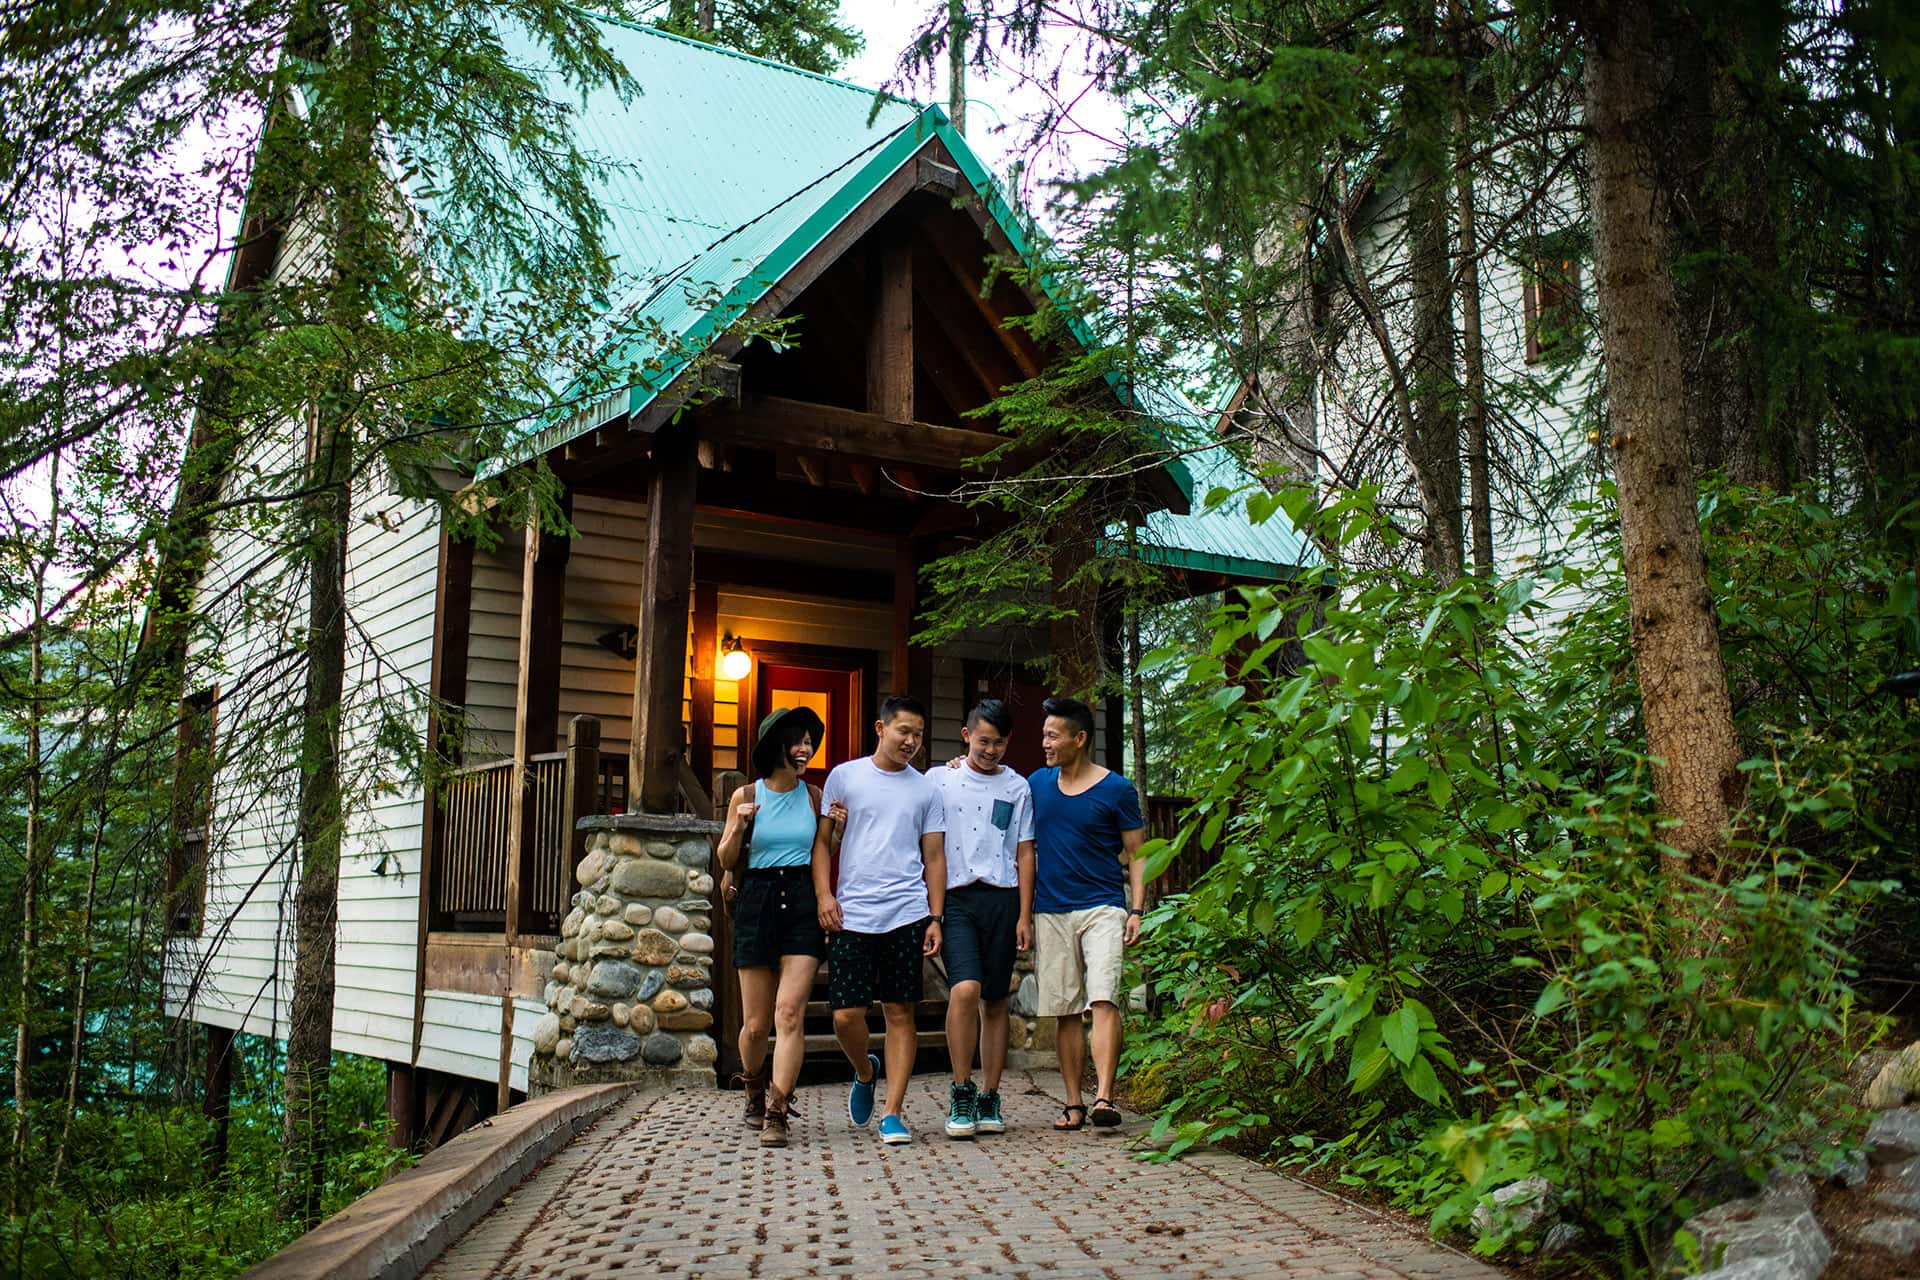 Stay with Friends at Emerald Lake Lodge in Yoho National Park